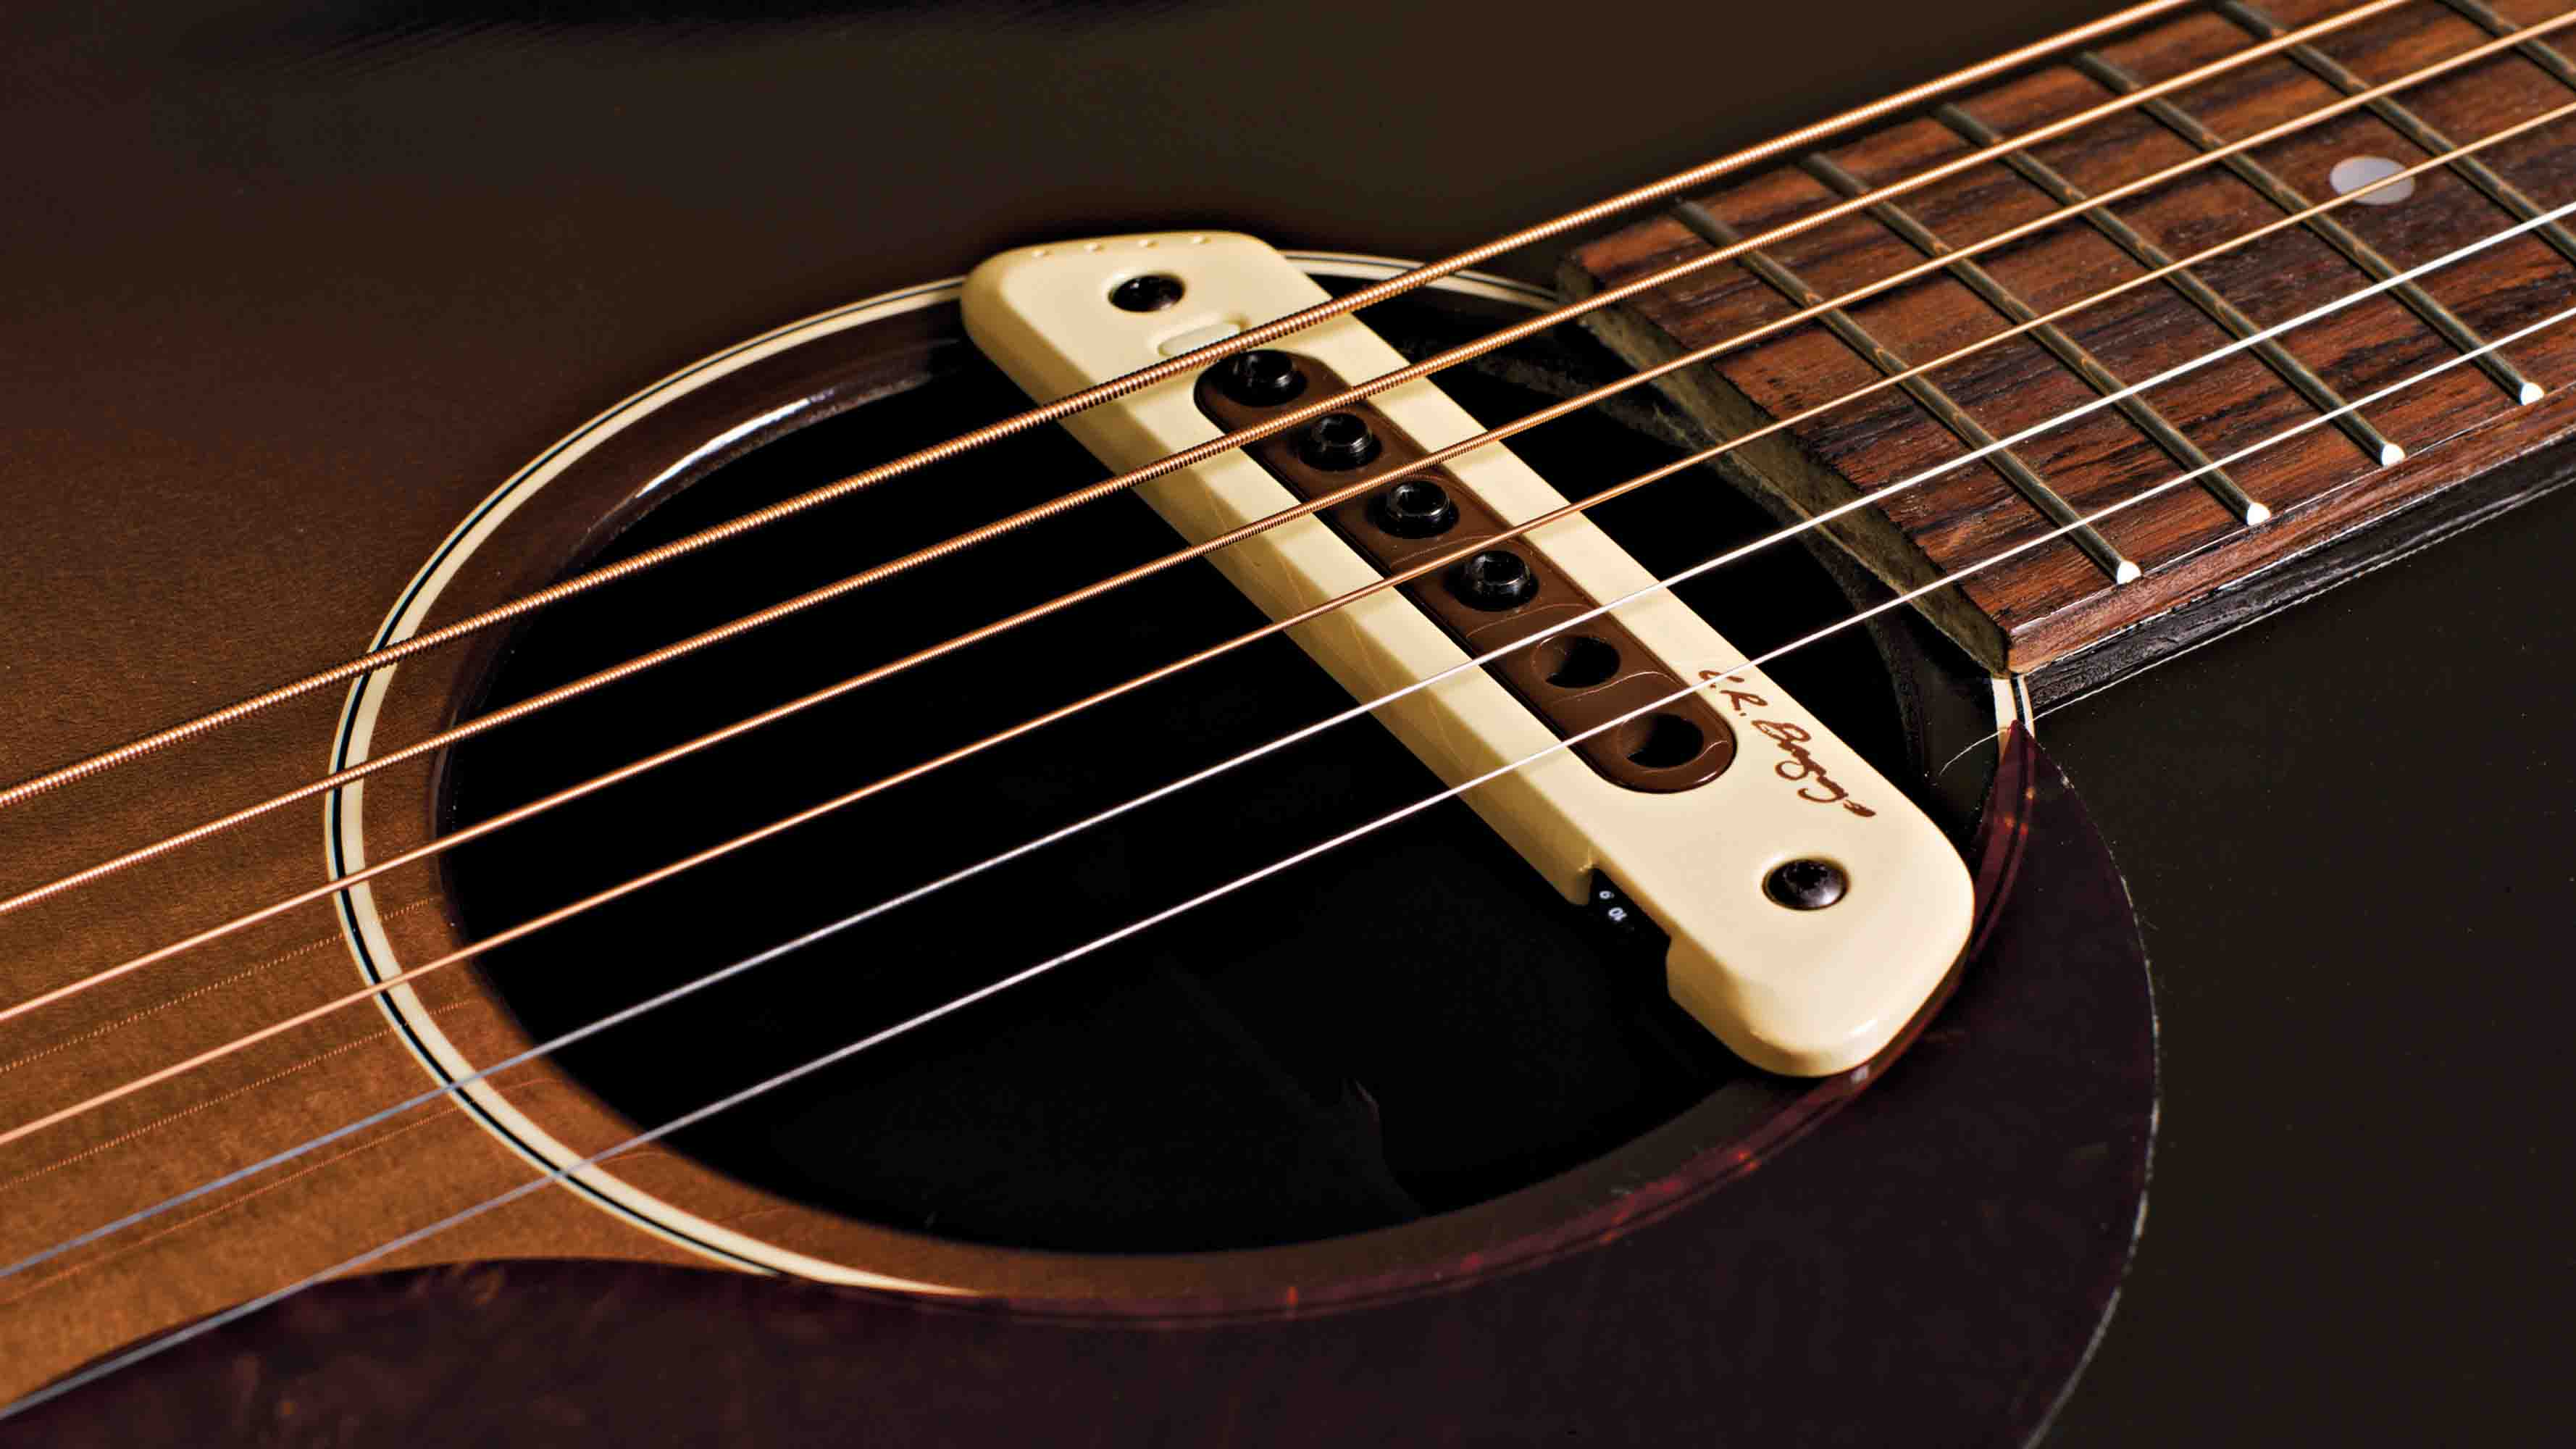 Fine Boiler Diagram Huge Dimarzio Pickup Wiring Color Code Regular Bulldog Alarm Systems Adding Electrical Circuit Young Wiring A Breaker Box Diagram RedHow To Add A New Circuit 7 Of The Best Acoustic Guitar Pickups | MusicRadar